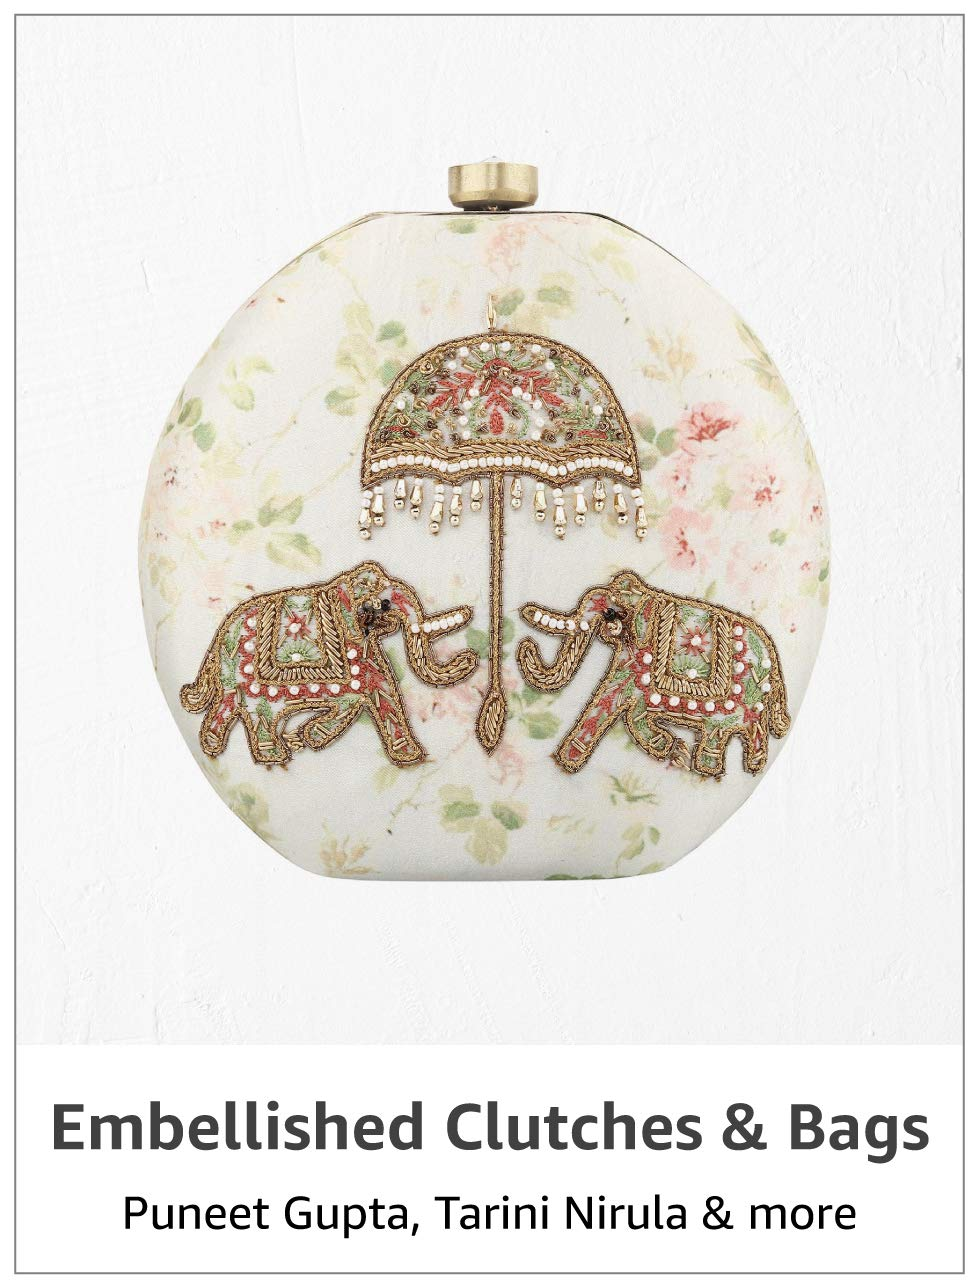 Embellished Clutches & Bags